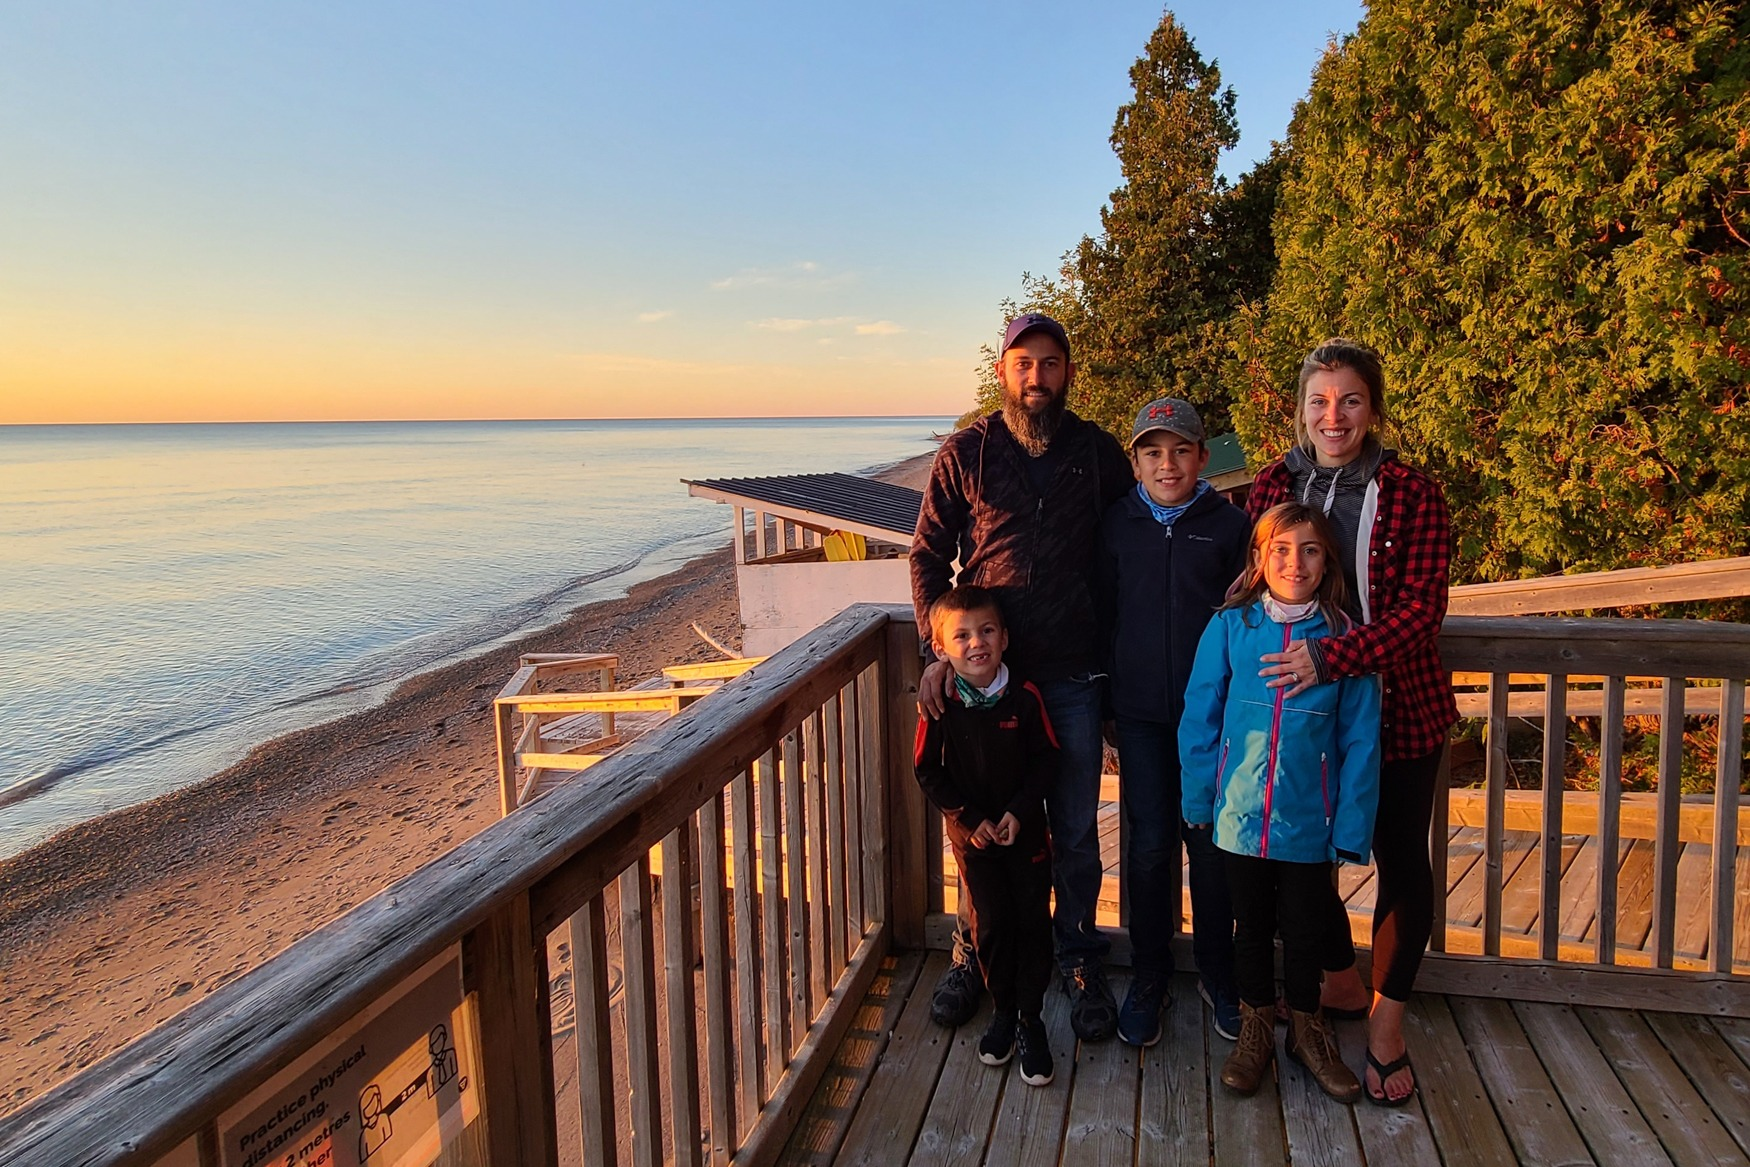 A young family of five stands on the deck at the beach during sunset.